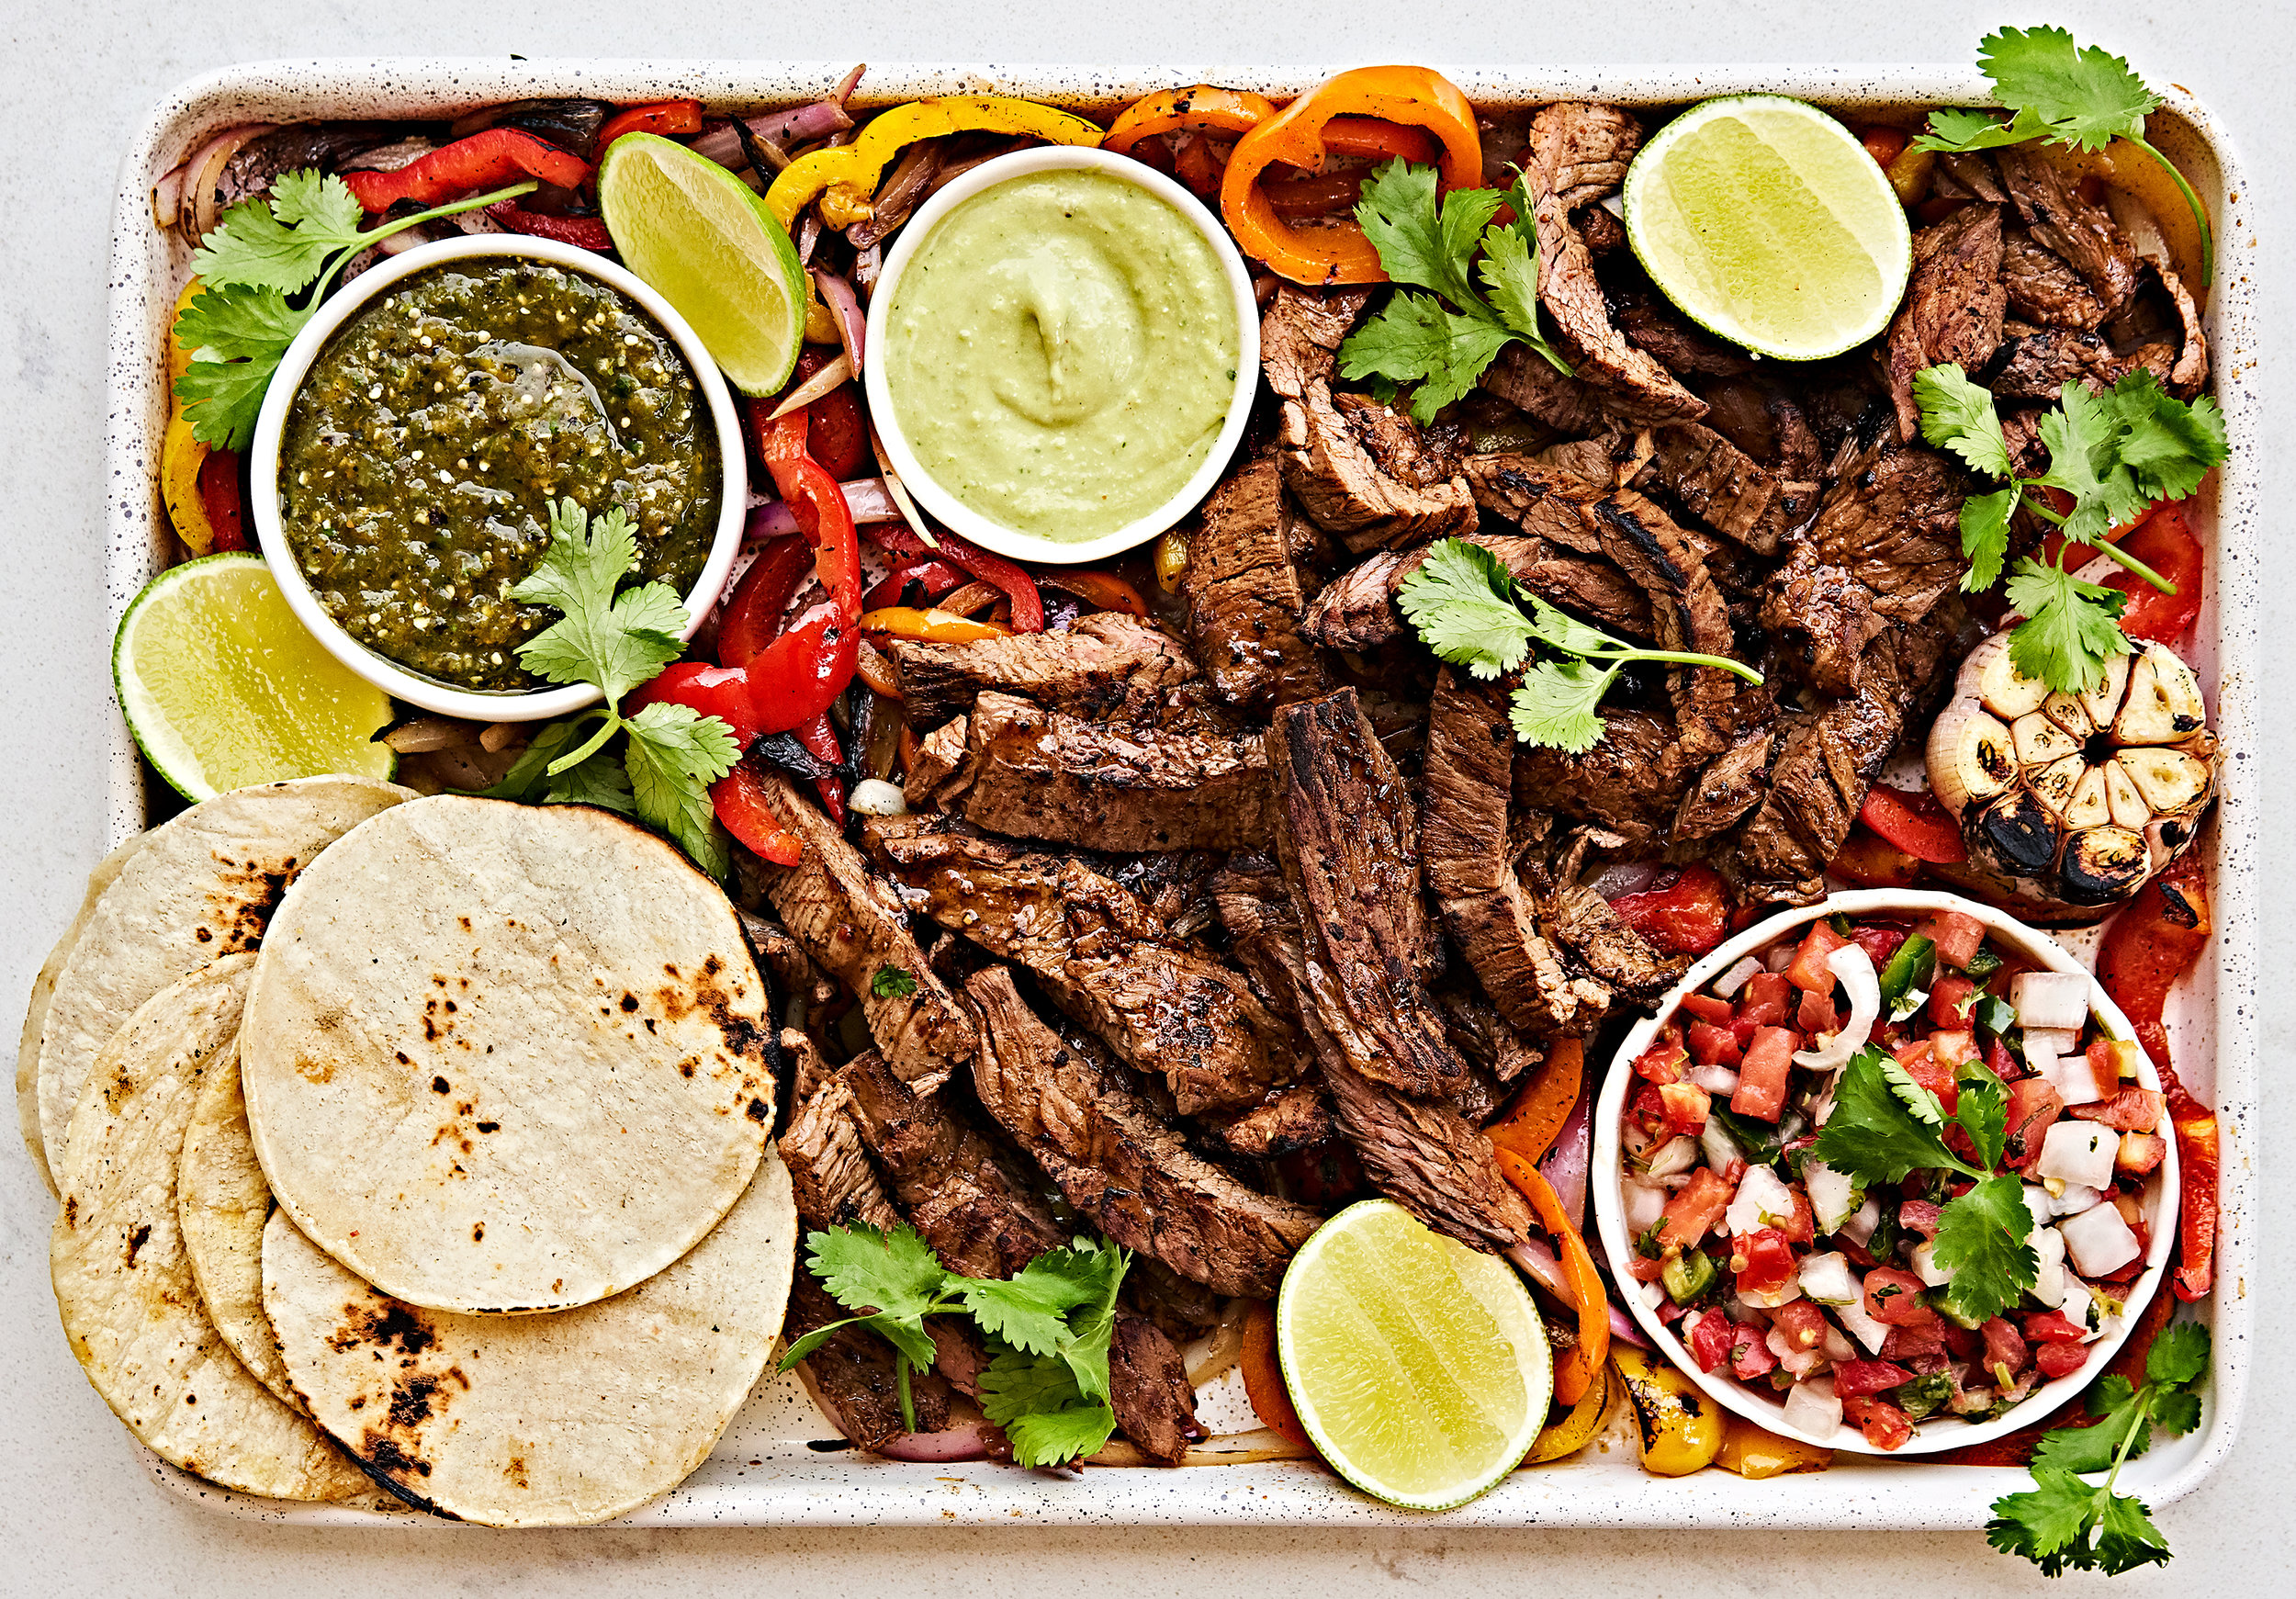 Flank steak fajitas platter with homemade salsa verde, sauteed peppers and onions, avocado crema and tortillas